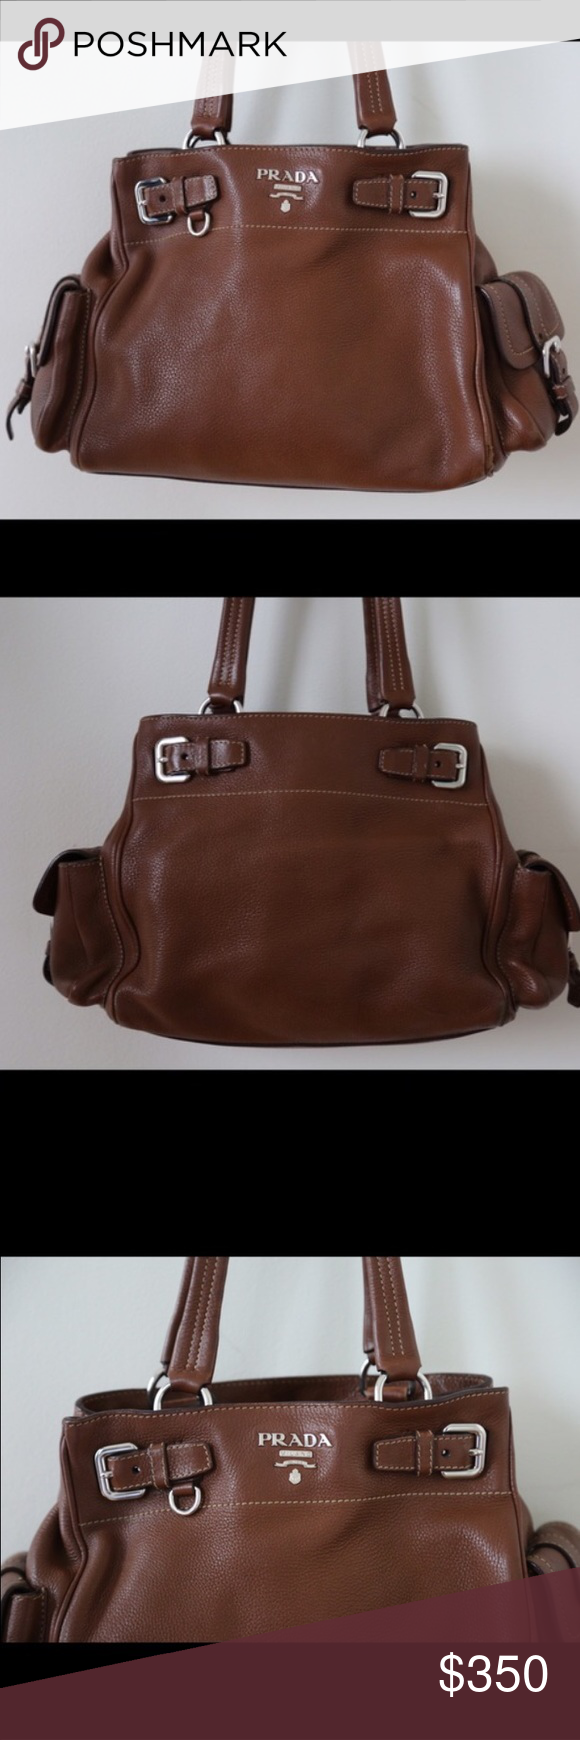 291e54c890 Vintage Prada Handbag Vintage Prada Handbag in great condition. Willing to  negotiate. Brown leather. Prada Bags Shoulder Bags